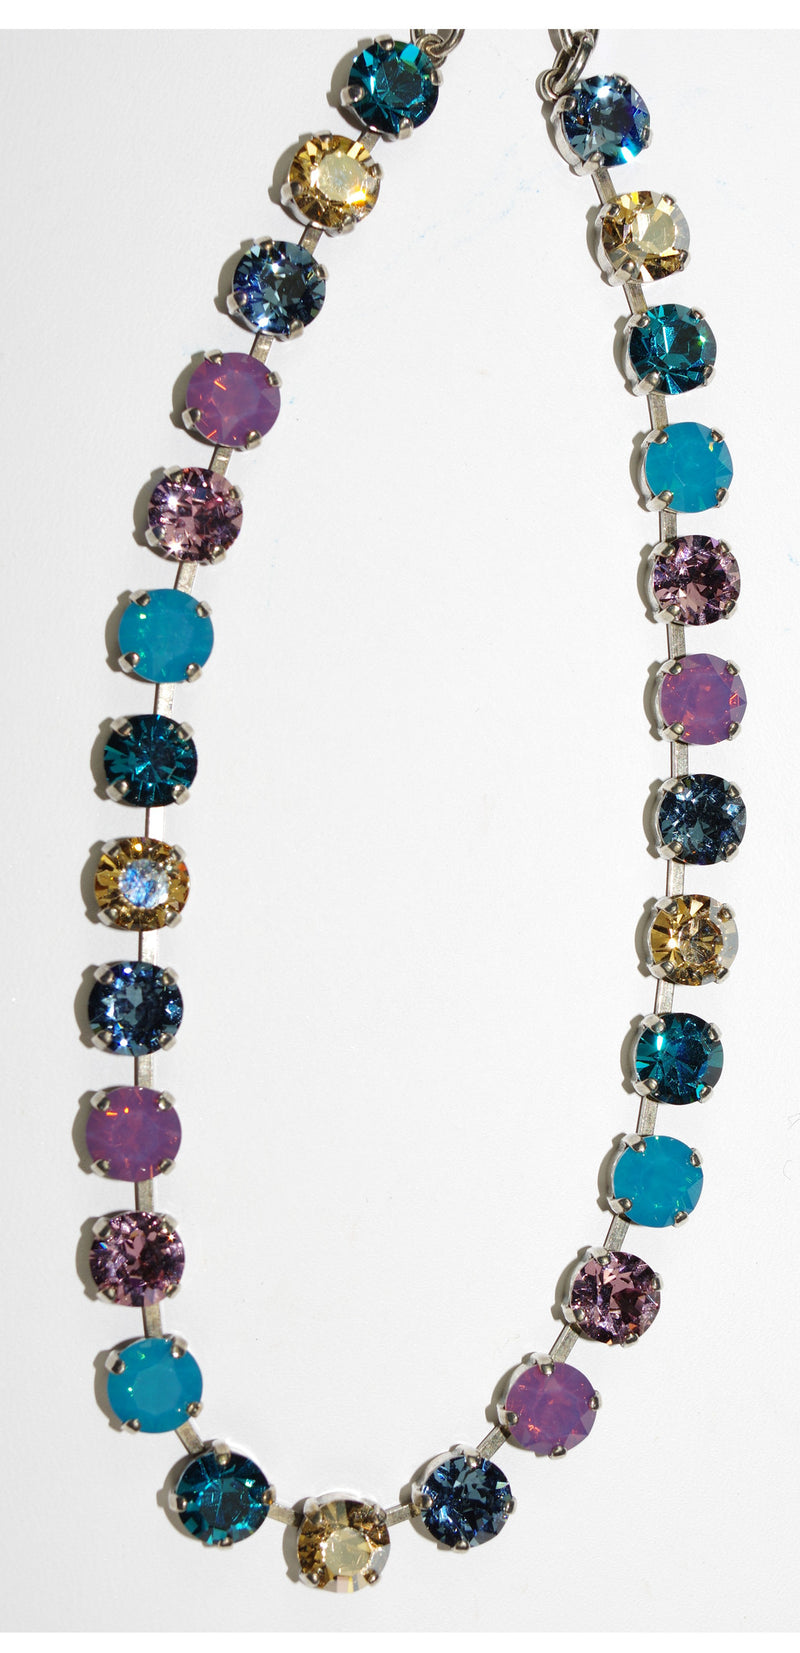 MARIANA NECKLACE SERENITY BETTE: blue, pink, lavender, amber stones in silver setting, adjustable chain